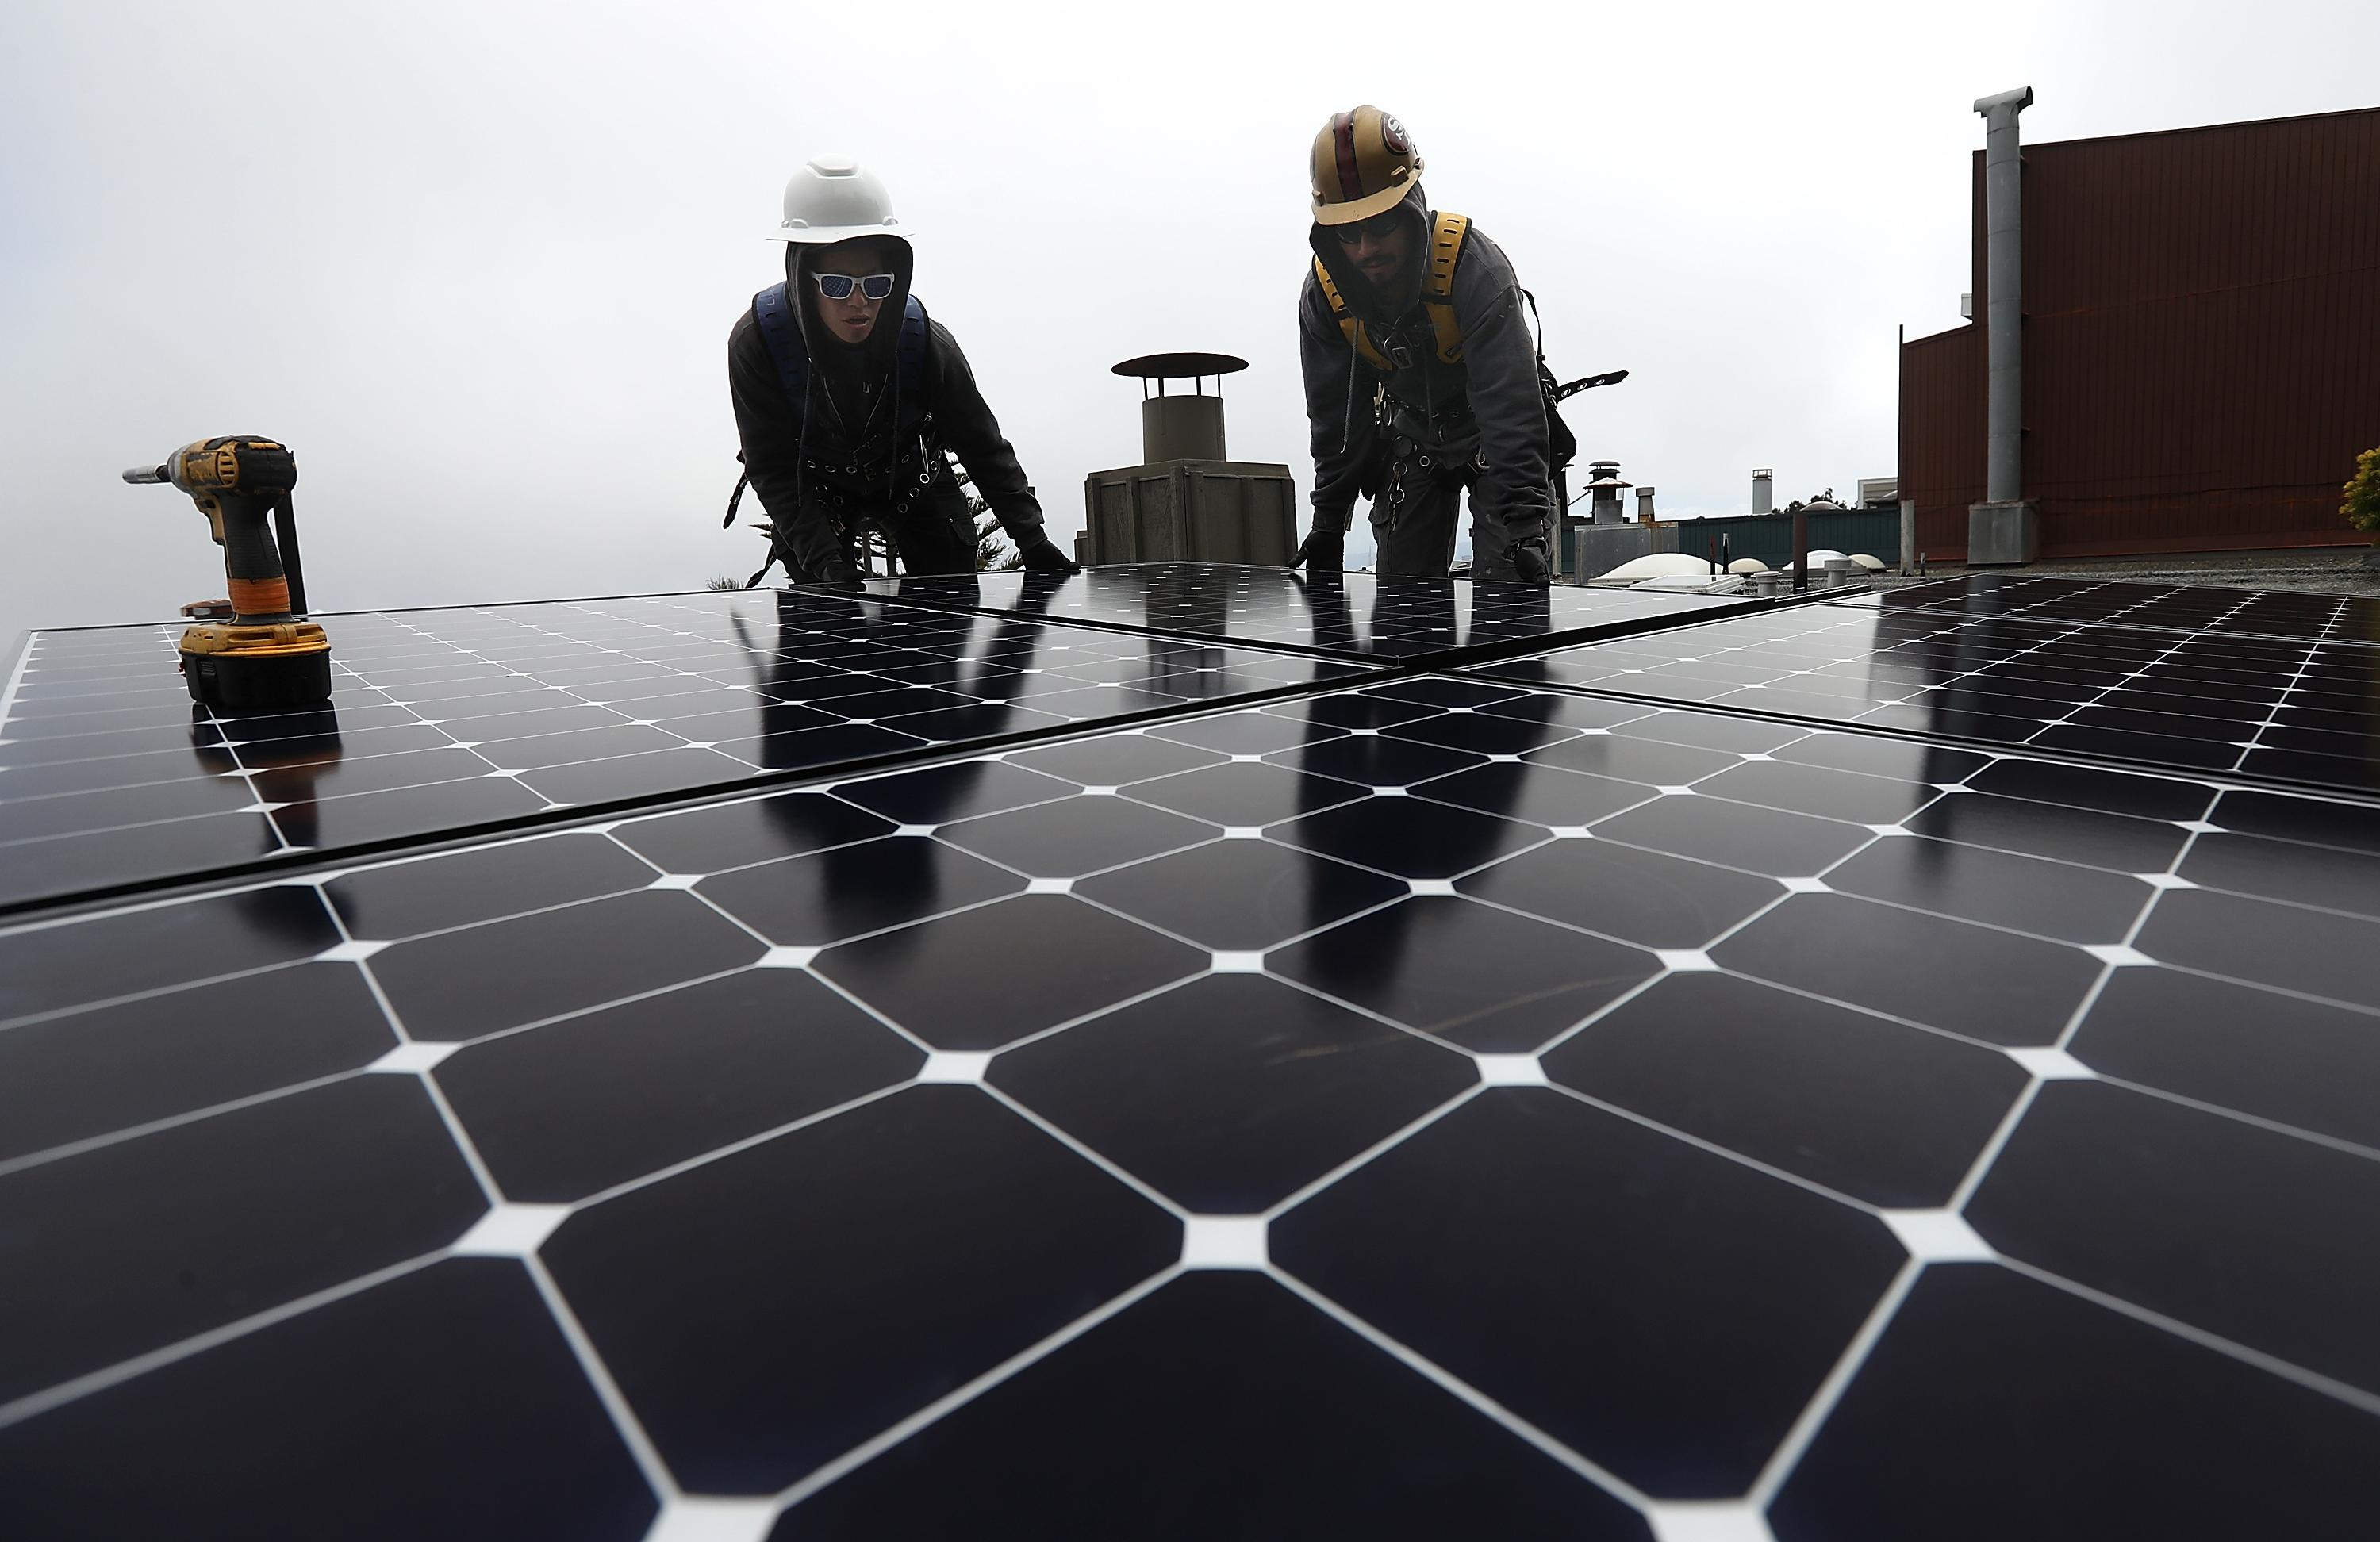 Workers of Luminalt, a solar panel company, install solar panels on the roof of a home on May 9, 2018 in San Francisco, California.